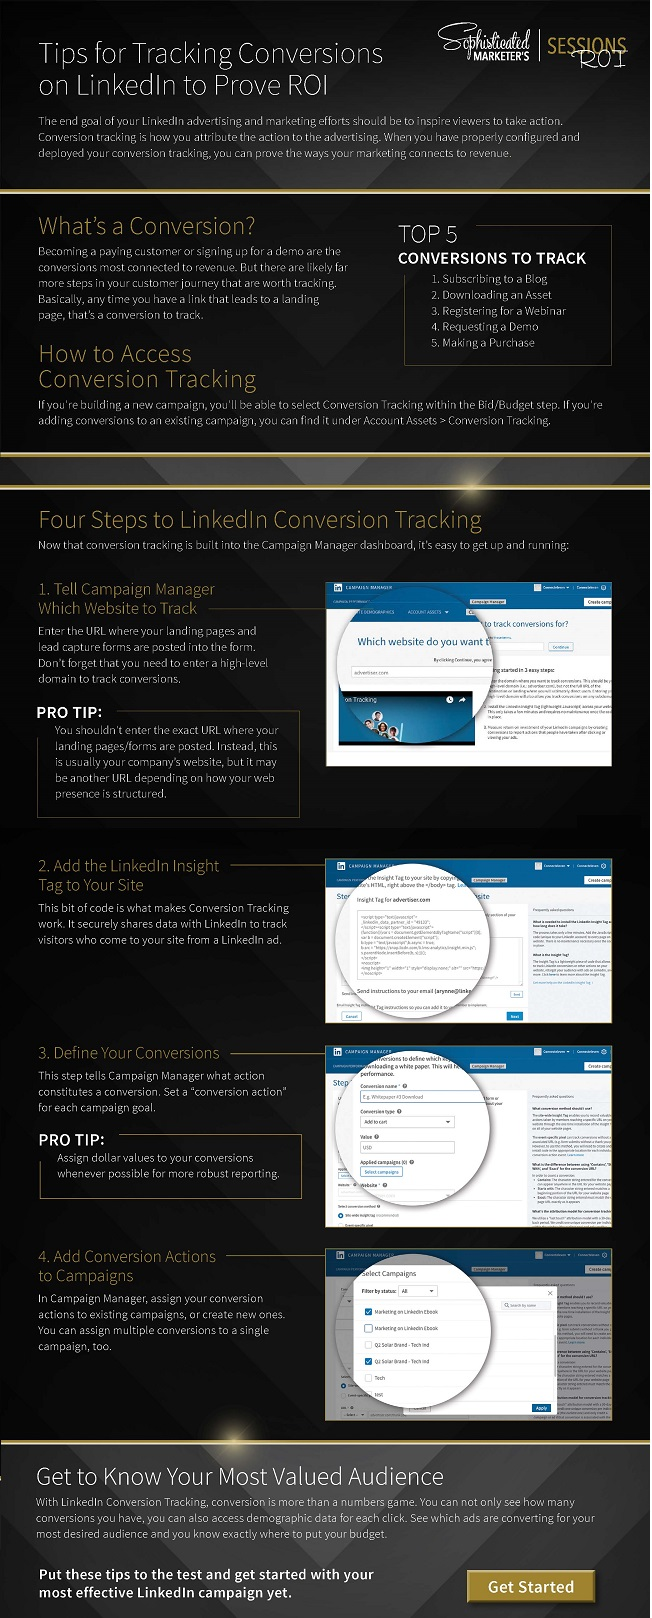 A Four-Step Guide to Tracking Conversions on LinkedIn [Infographic] | Social Media Today